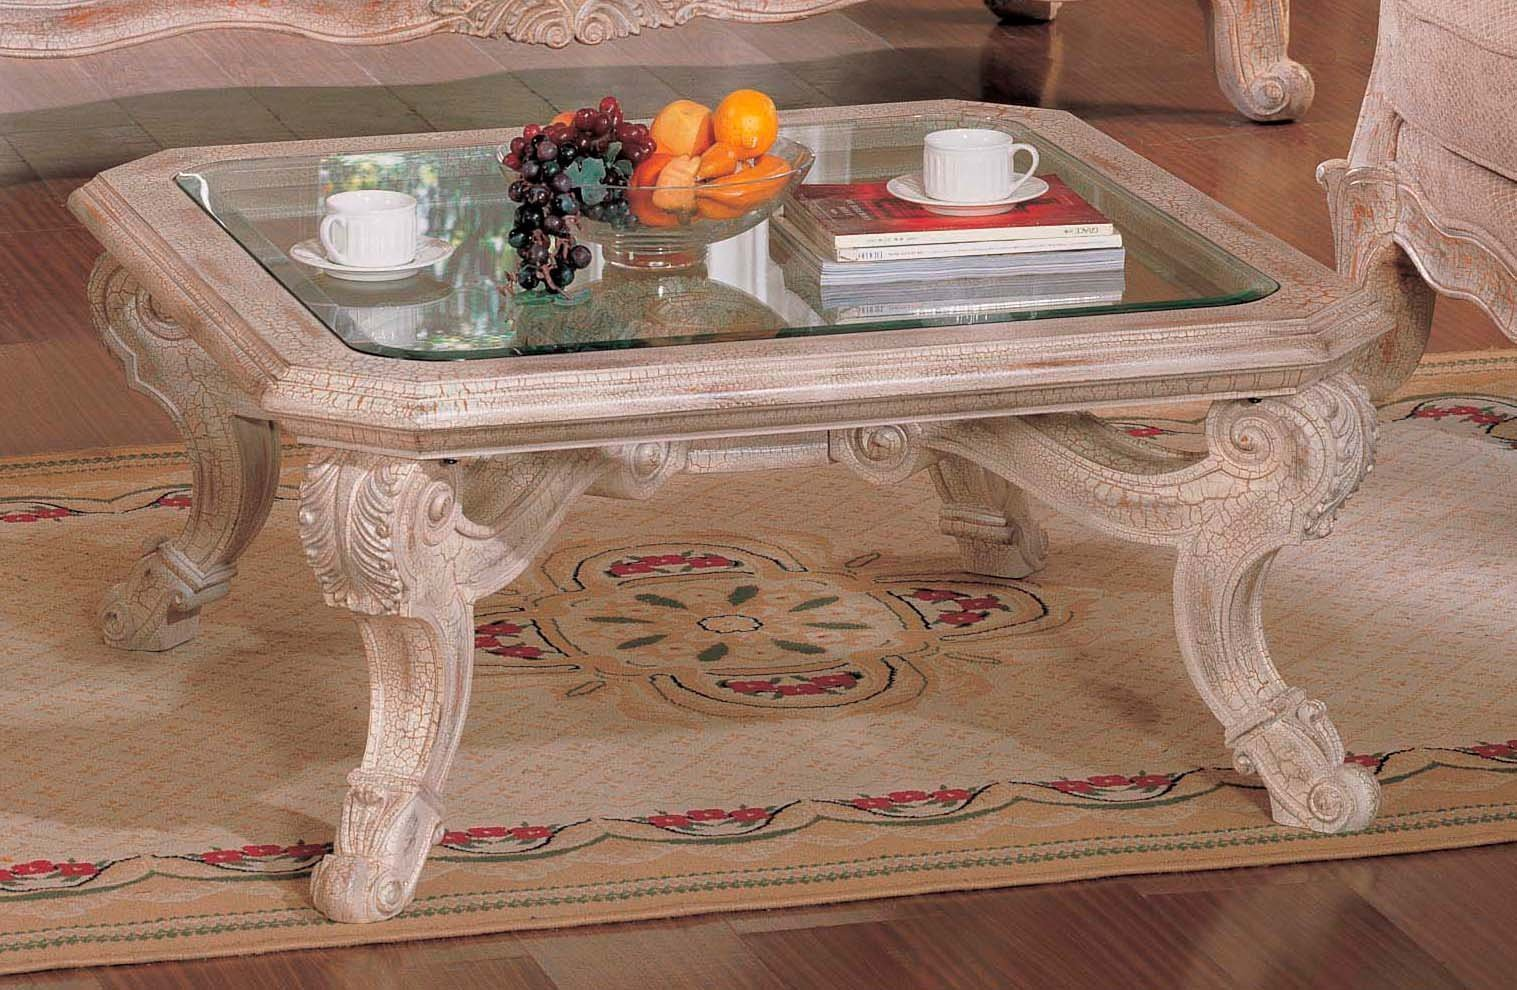 Off-White-Coffee-Table-Set-wood-square-shape-with-4-legs-and-champer-Luxury-Antique-White-Living-Room (Image 3 of 9)